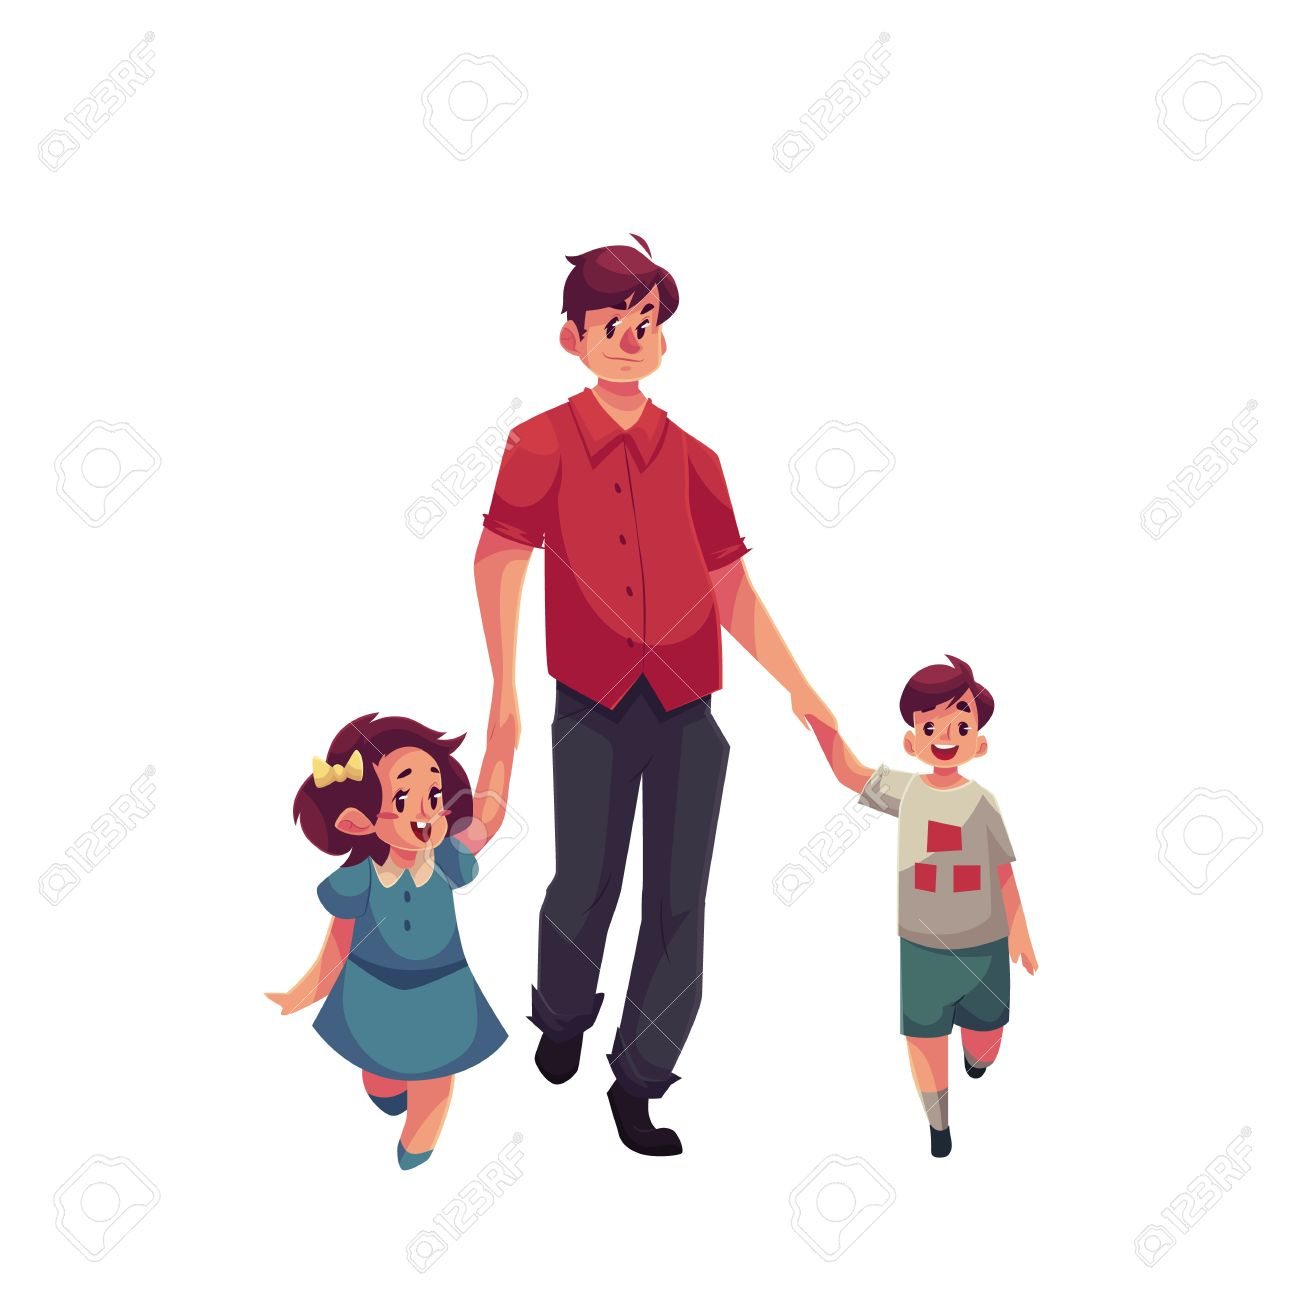 African american parents walking holding child hand clipart graphic black and white library Father Walking Cliparts | Free download best Father Walking Cliparts ... graphic black and white library